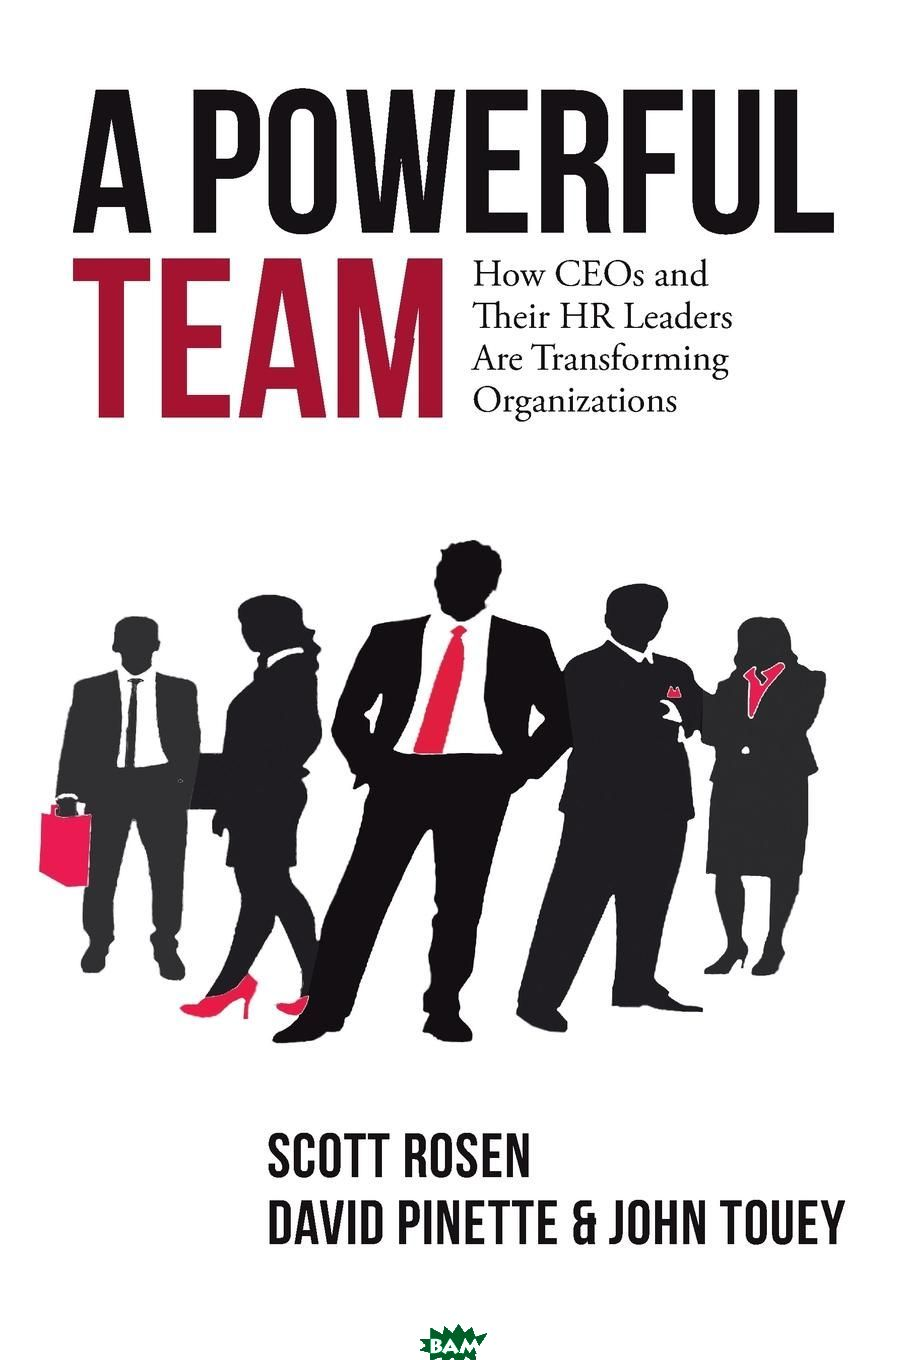 A Powerful Team. How CEOs and Their HR Leaders Are Transforming Organizations